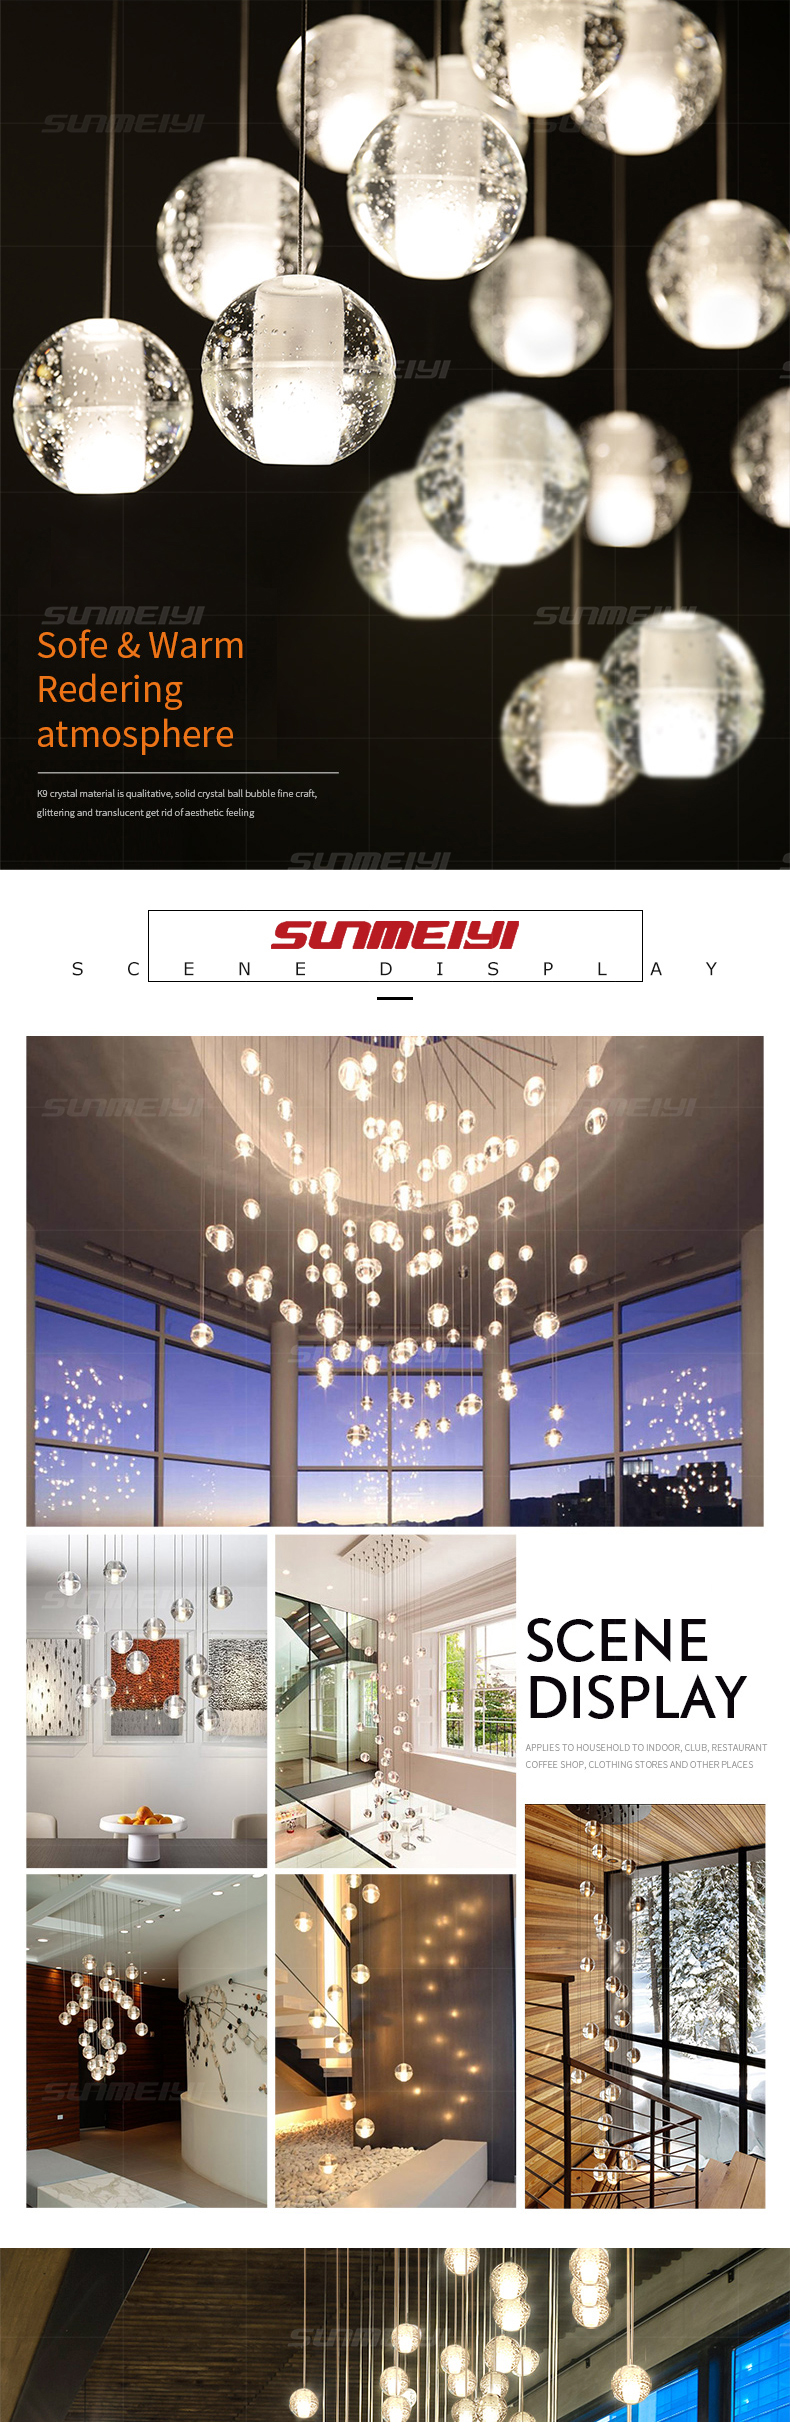 pendant lights_01